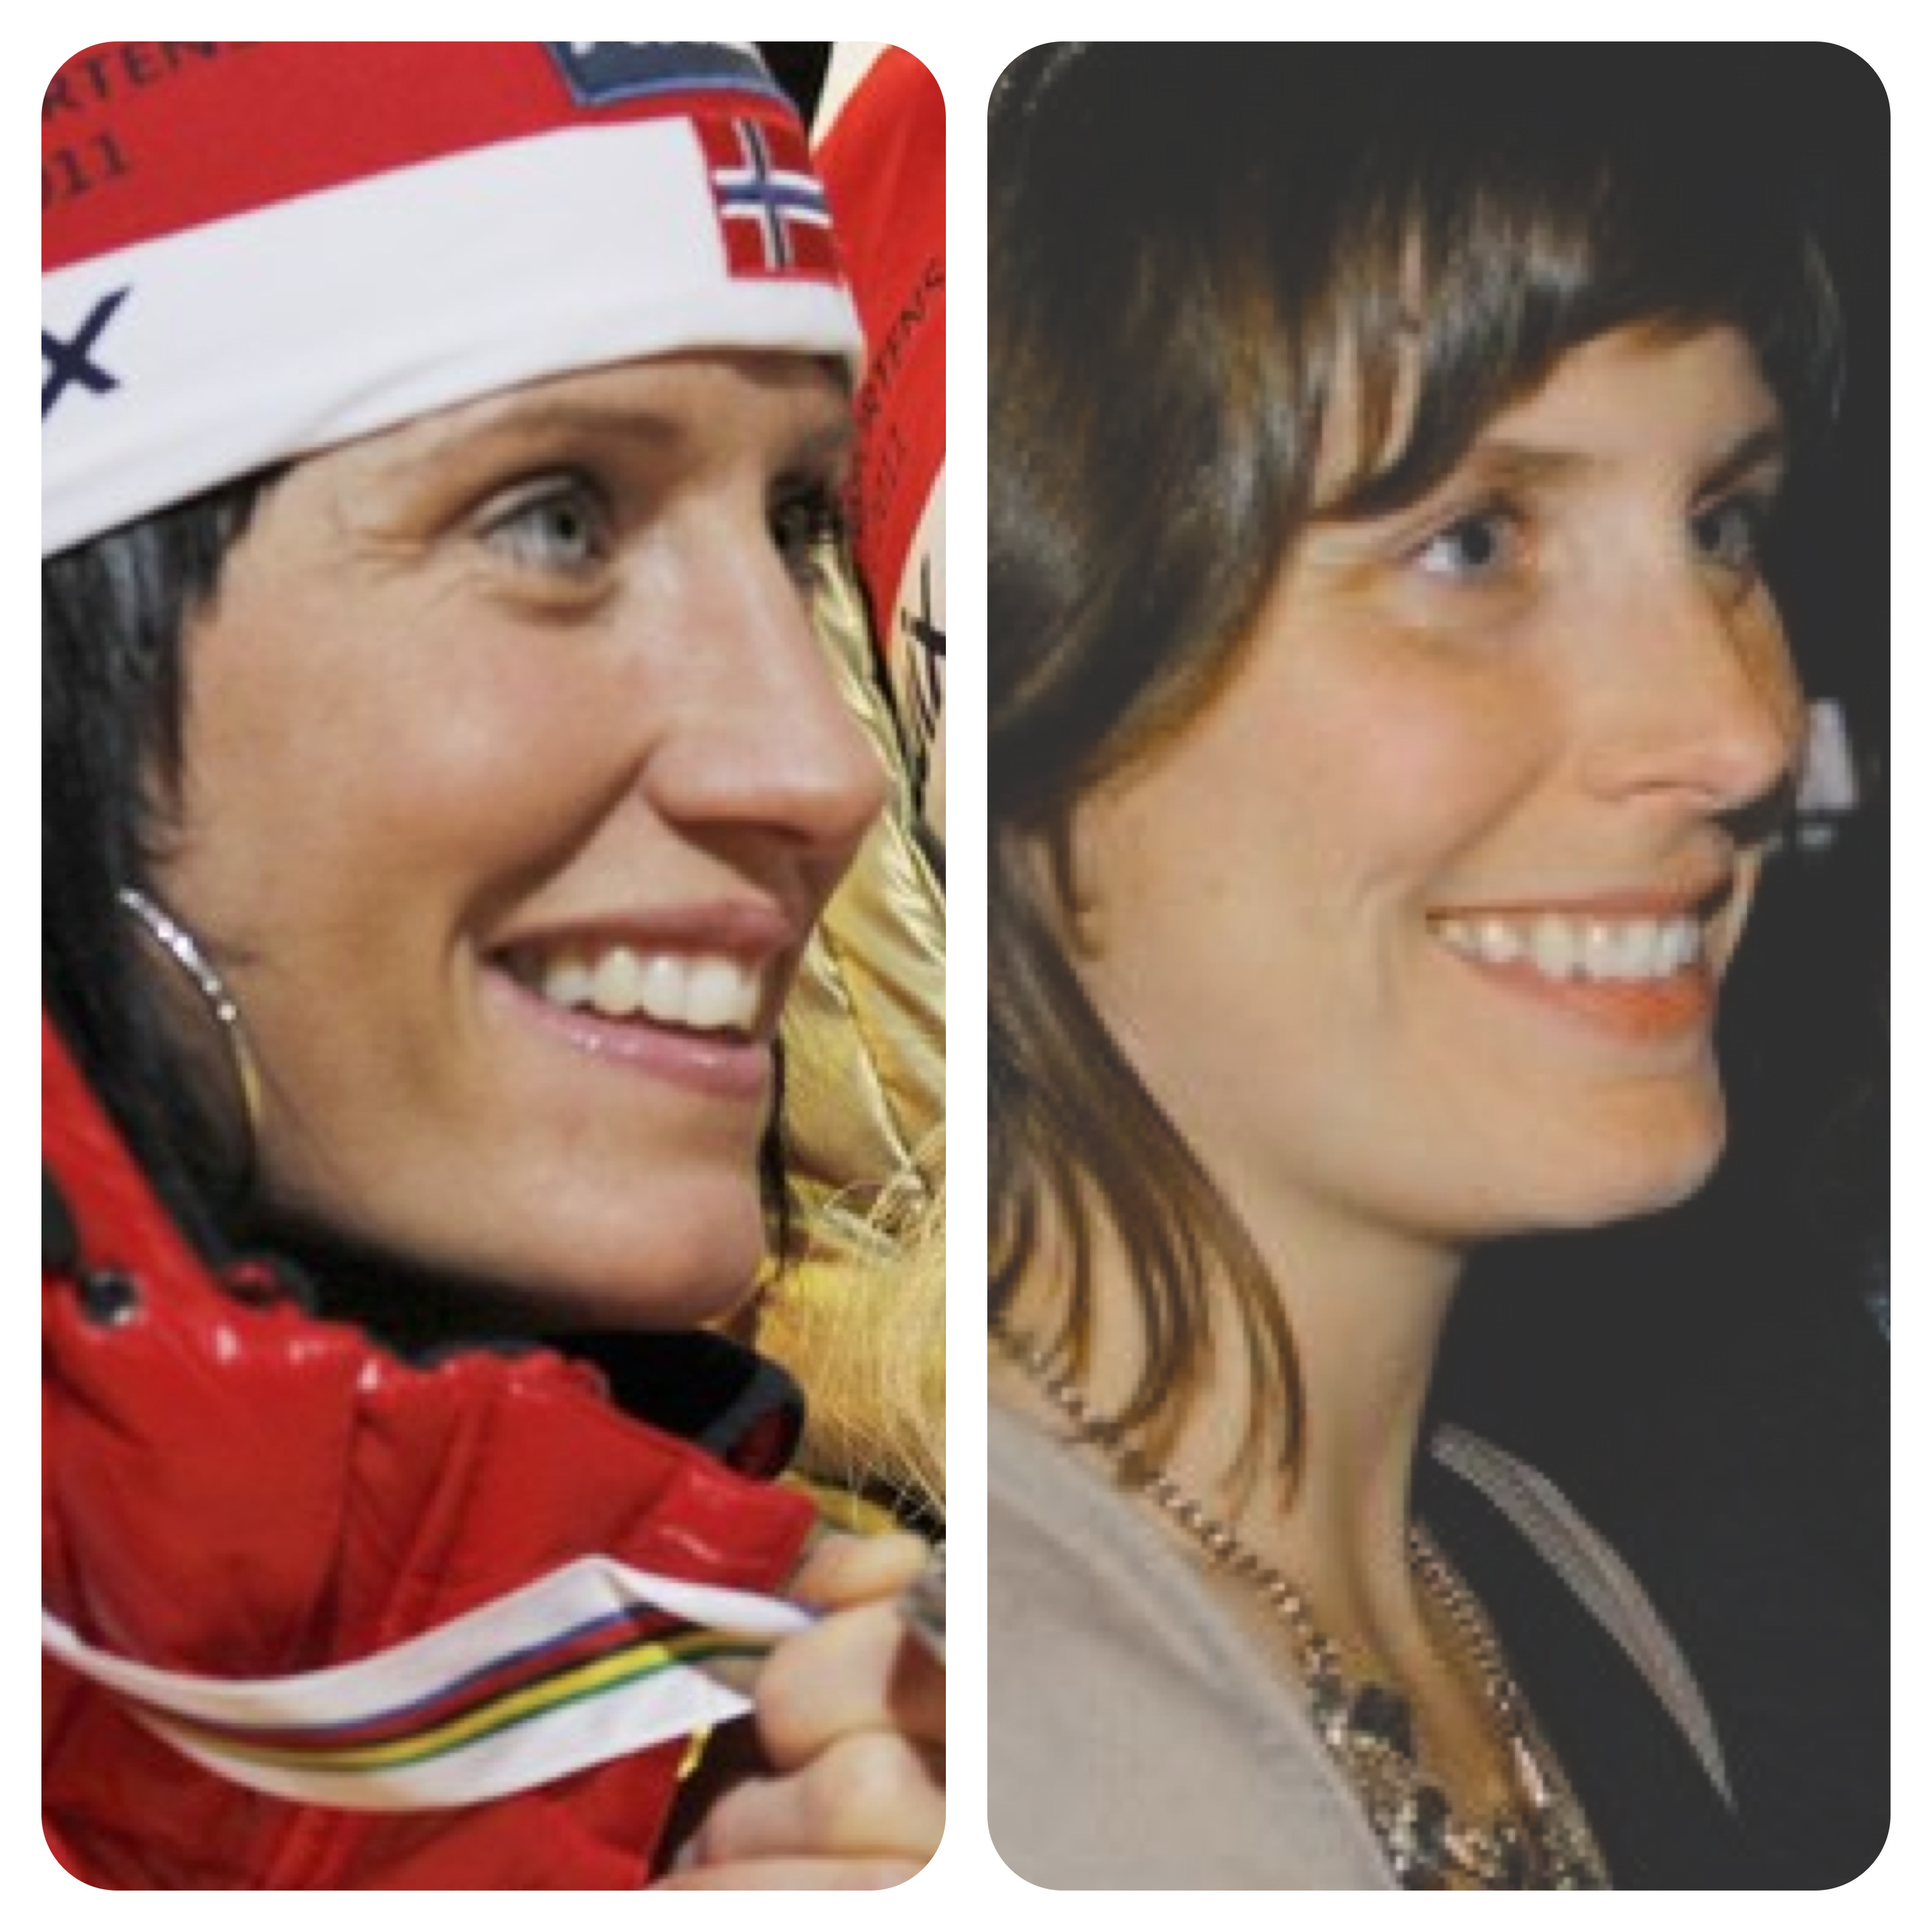 Photo courtesy of Jaffrey Bagge Which one is the real one? Bagge is flattered by comparisons to Marit Bjørgen, who won the gold medal in crosscountry skiathlon at the Sochi Olympics.